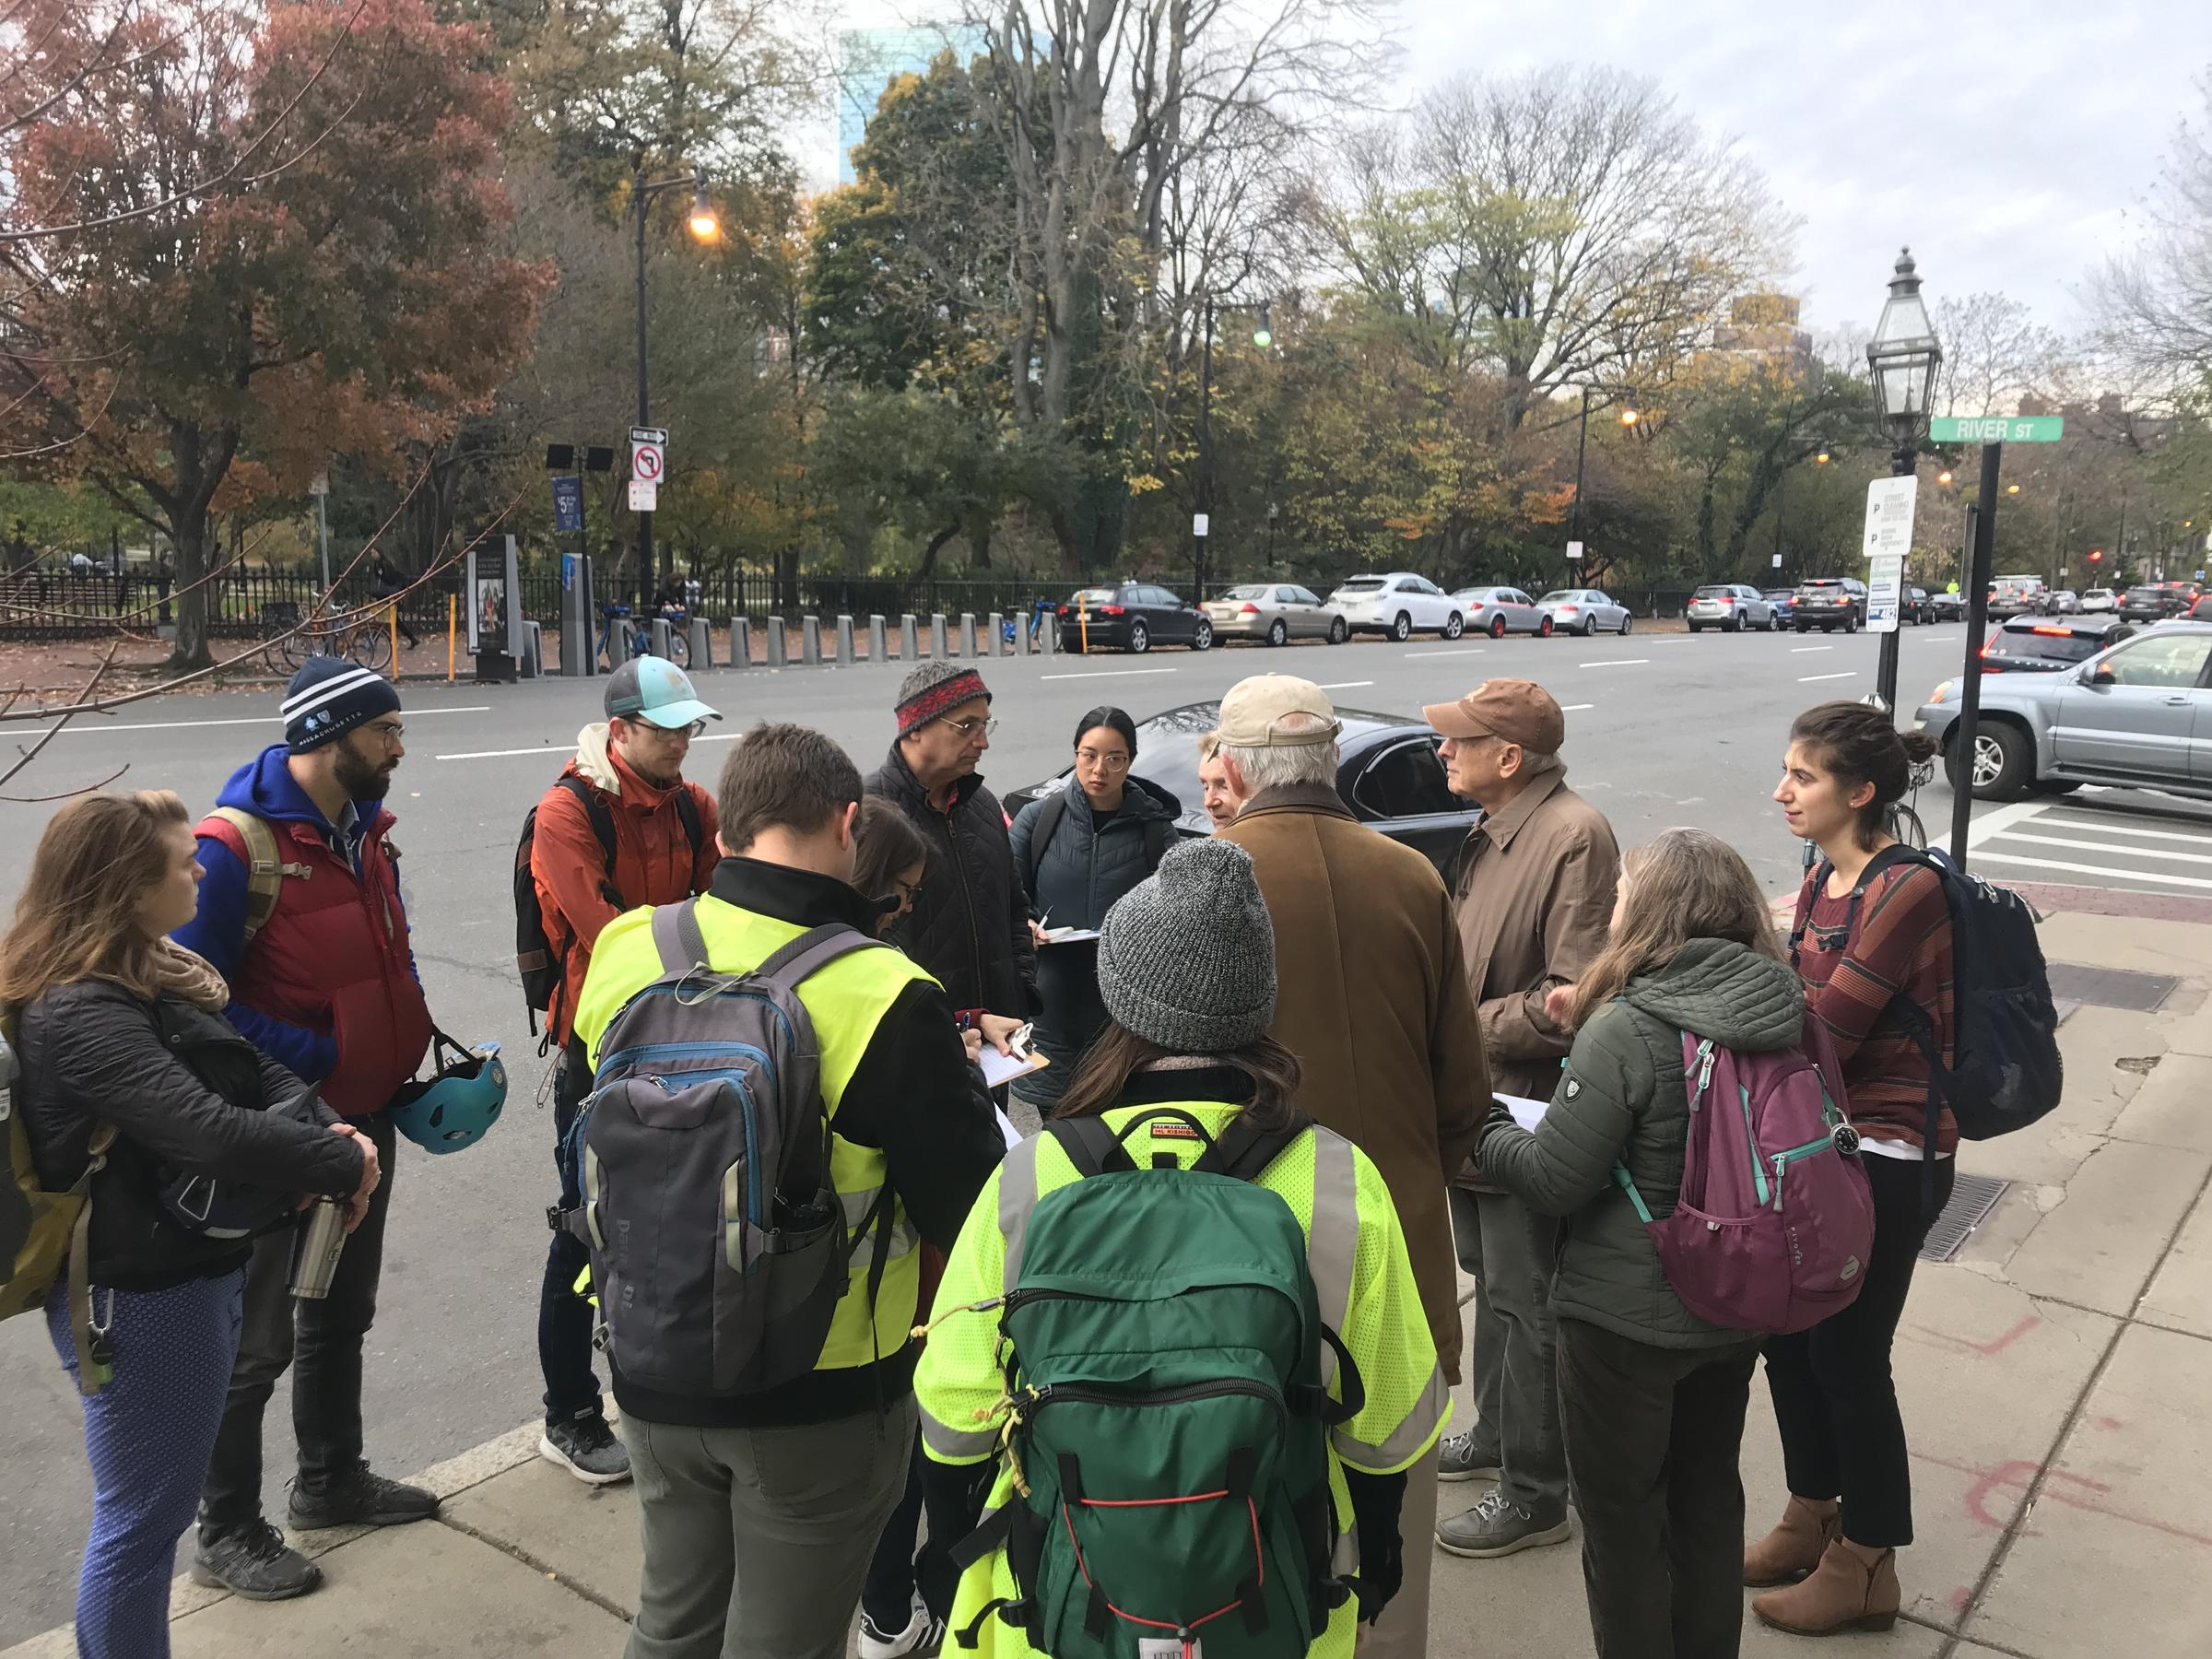 Photo showing participants in the Back Bay Community Walk; about 15 people gathered in a group on a sidewalk.